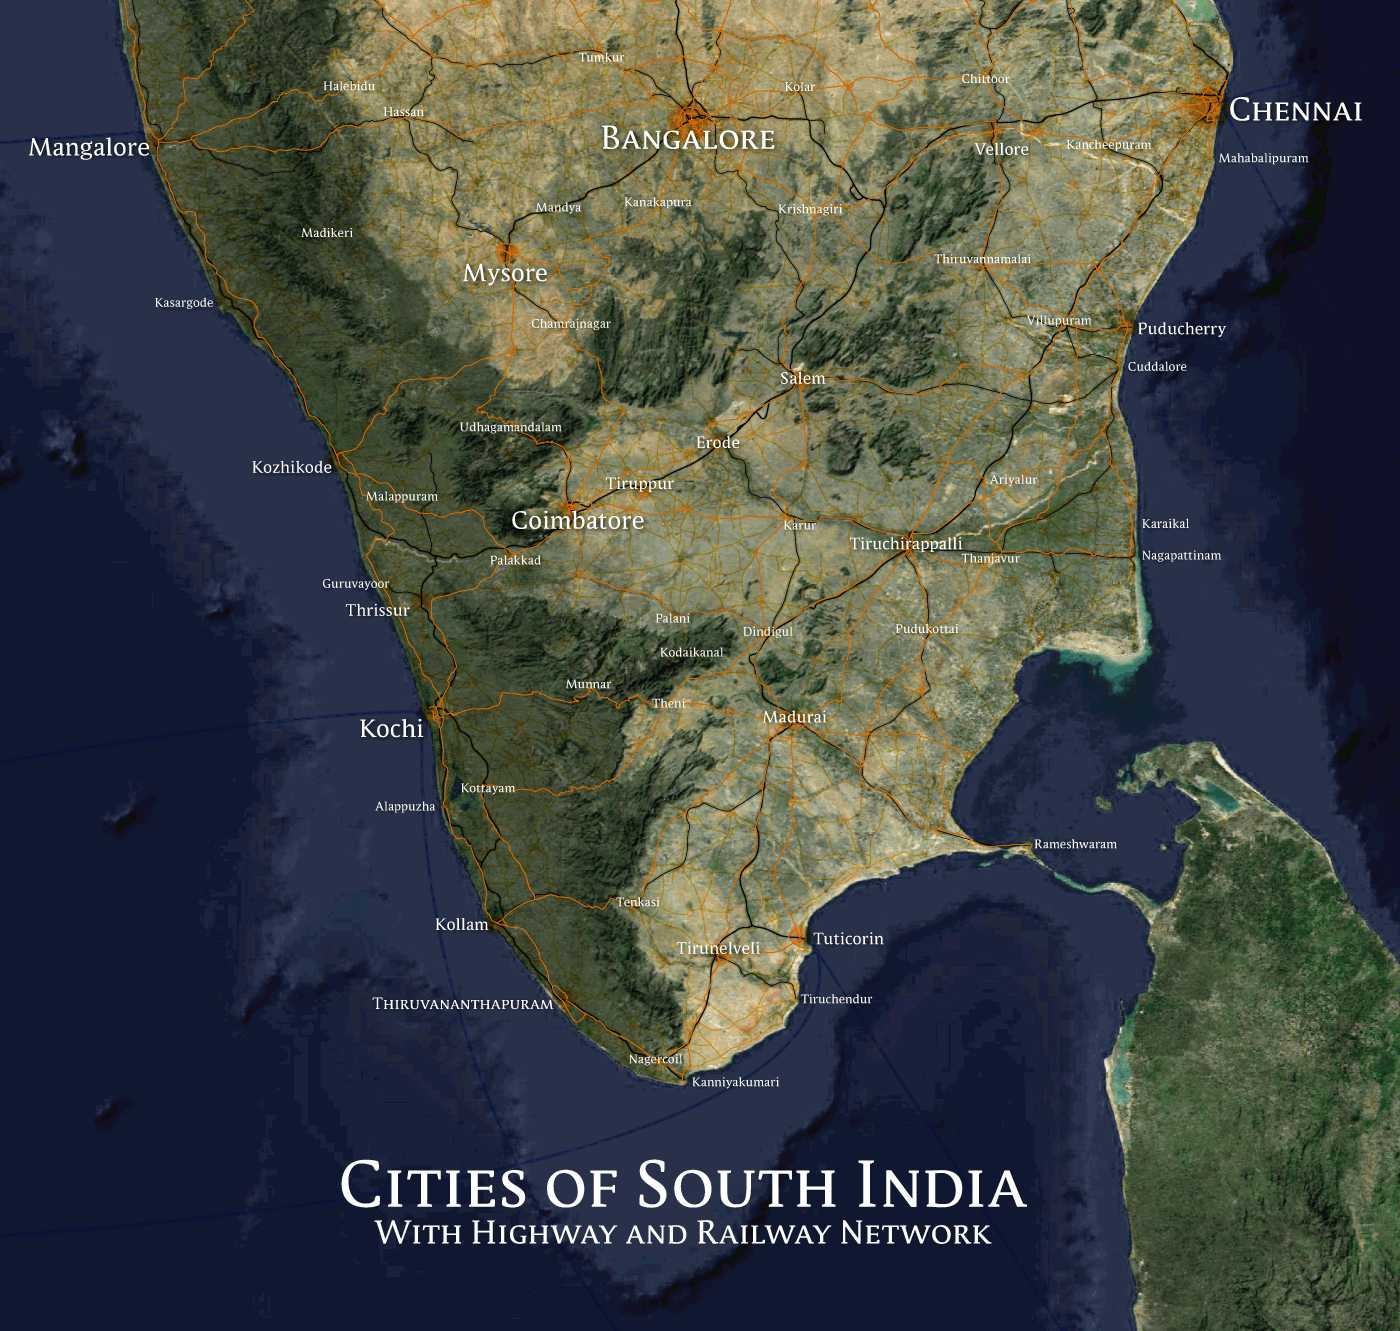 Cities_of_South_India_with_Highway_Network_Map